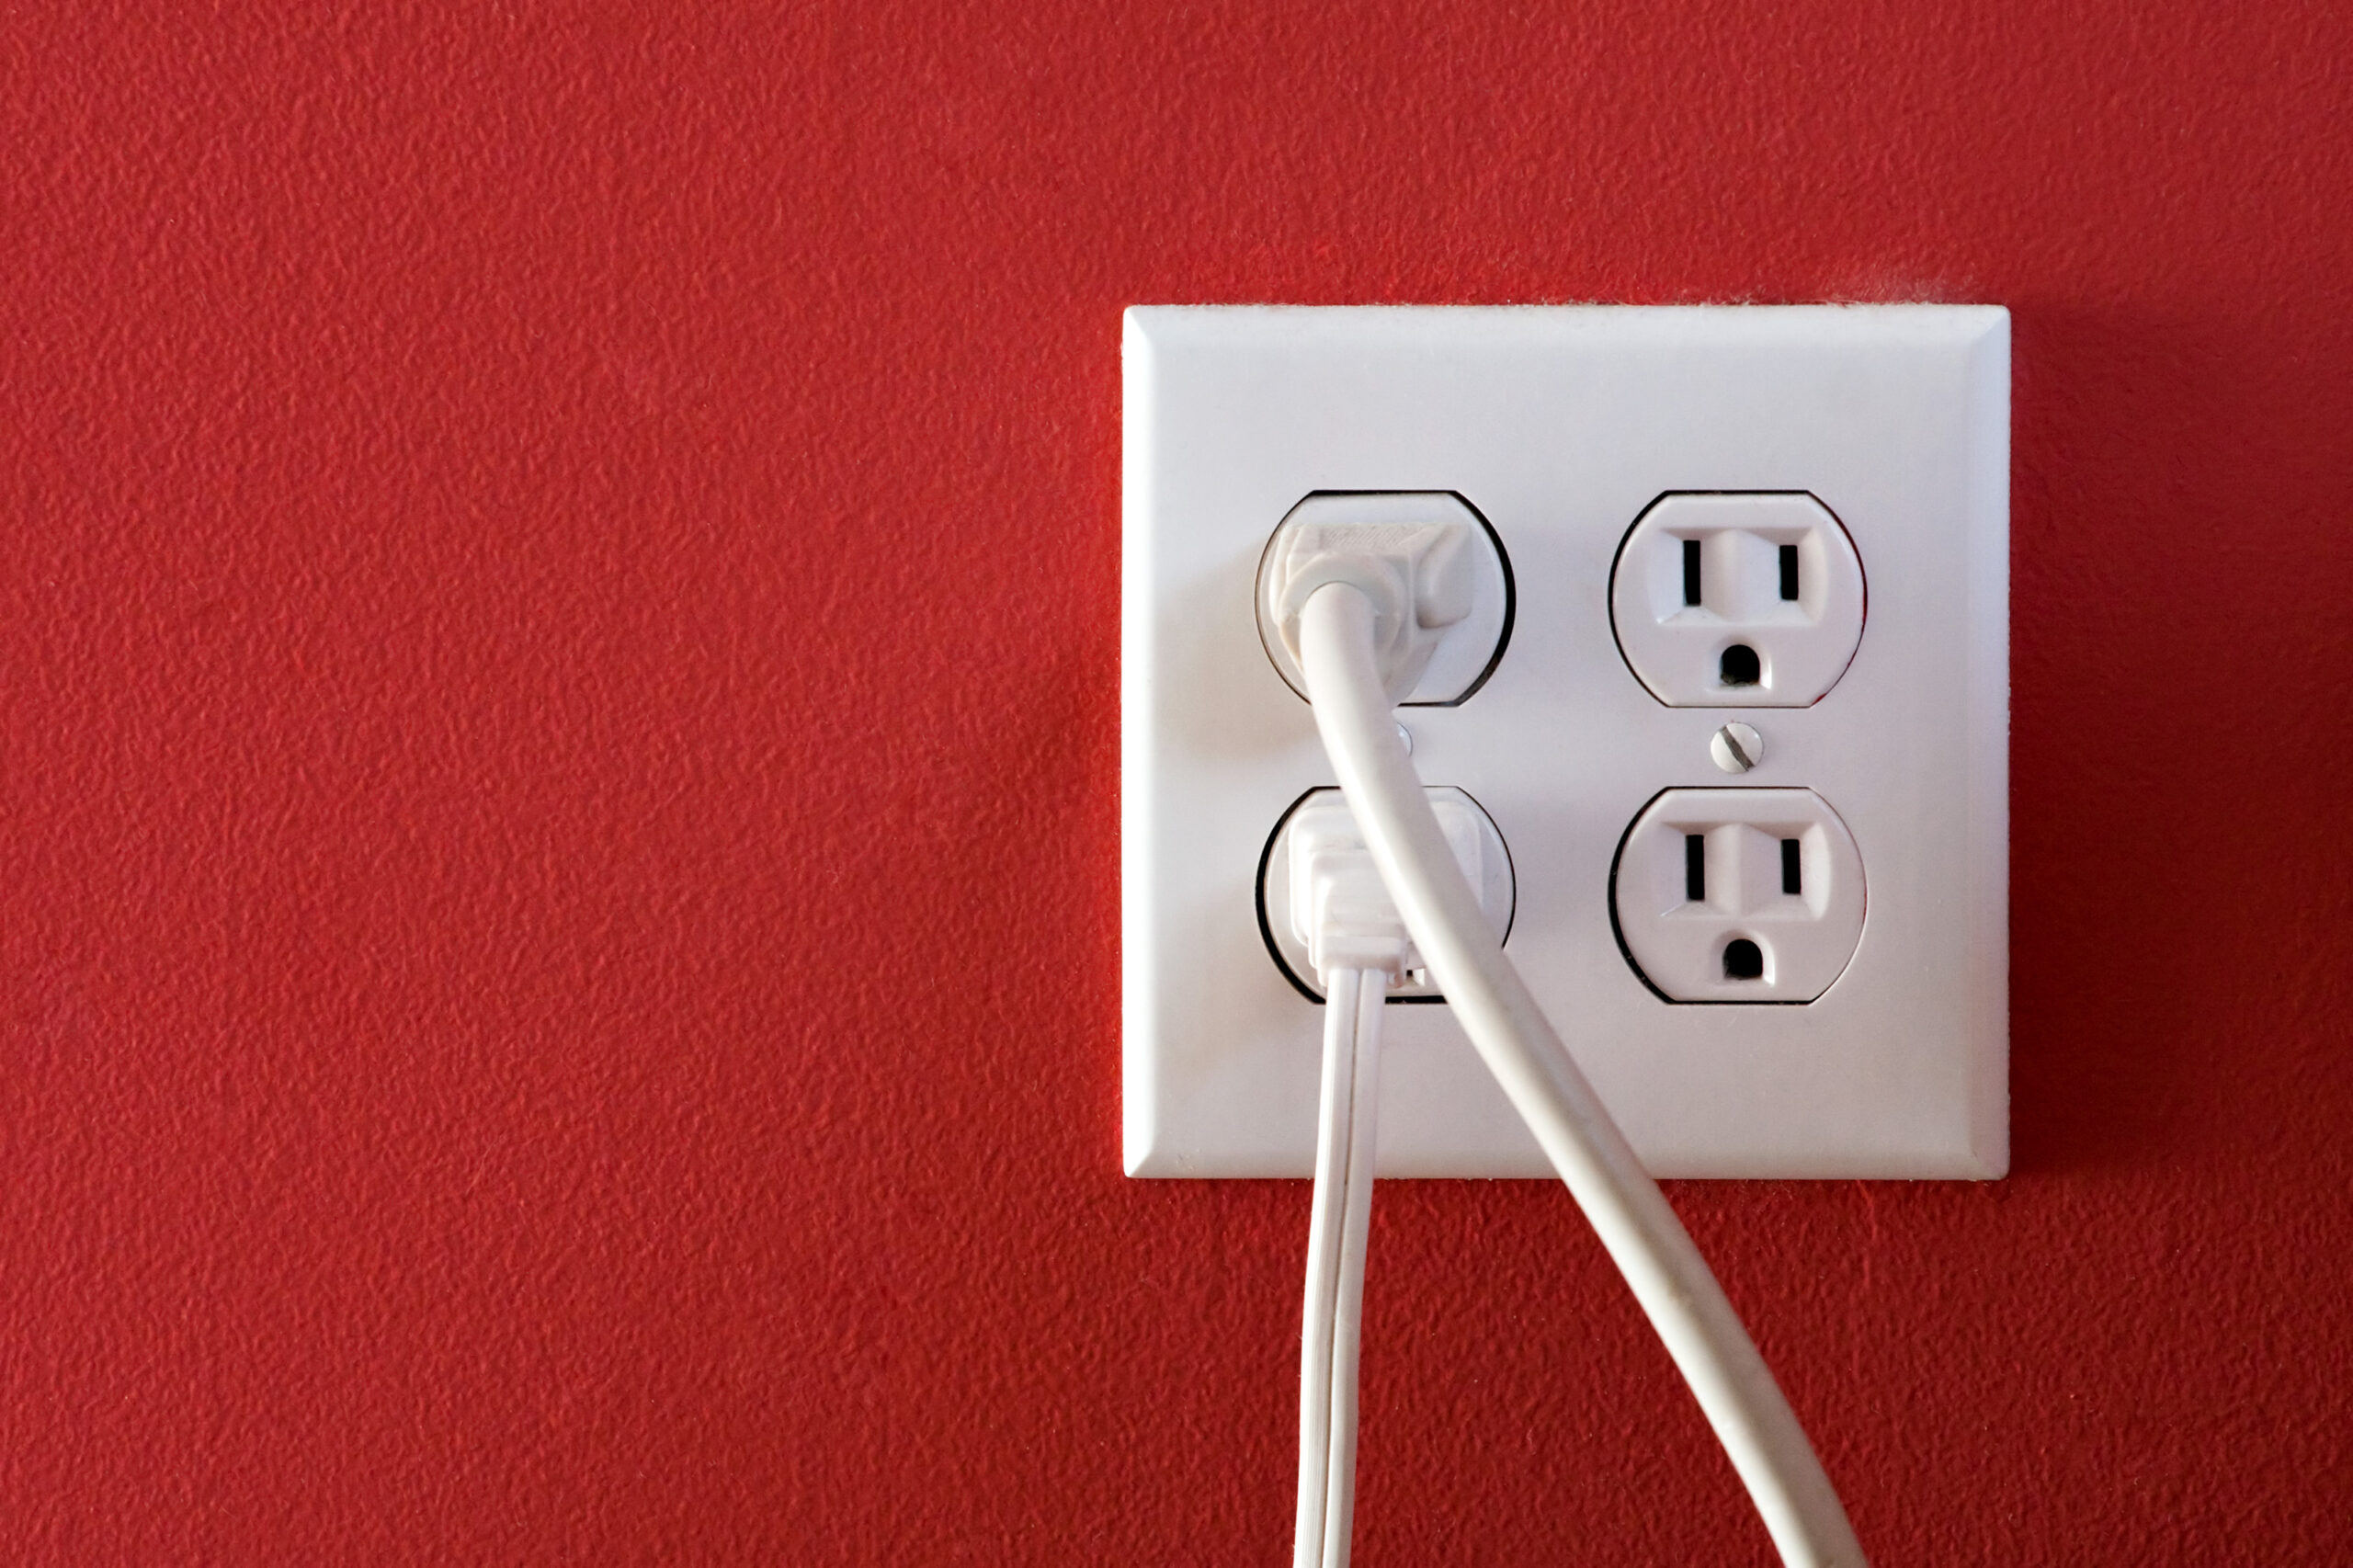 Electrical Safety Tips: How to avoid short circuits at home?